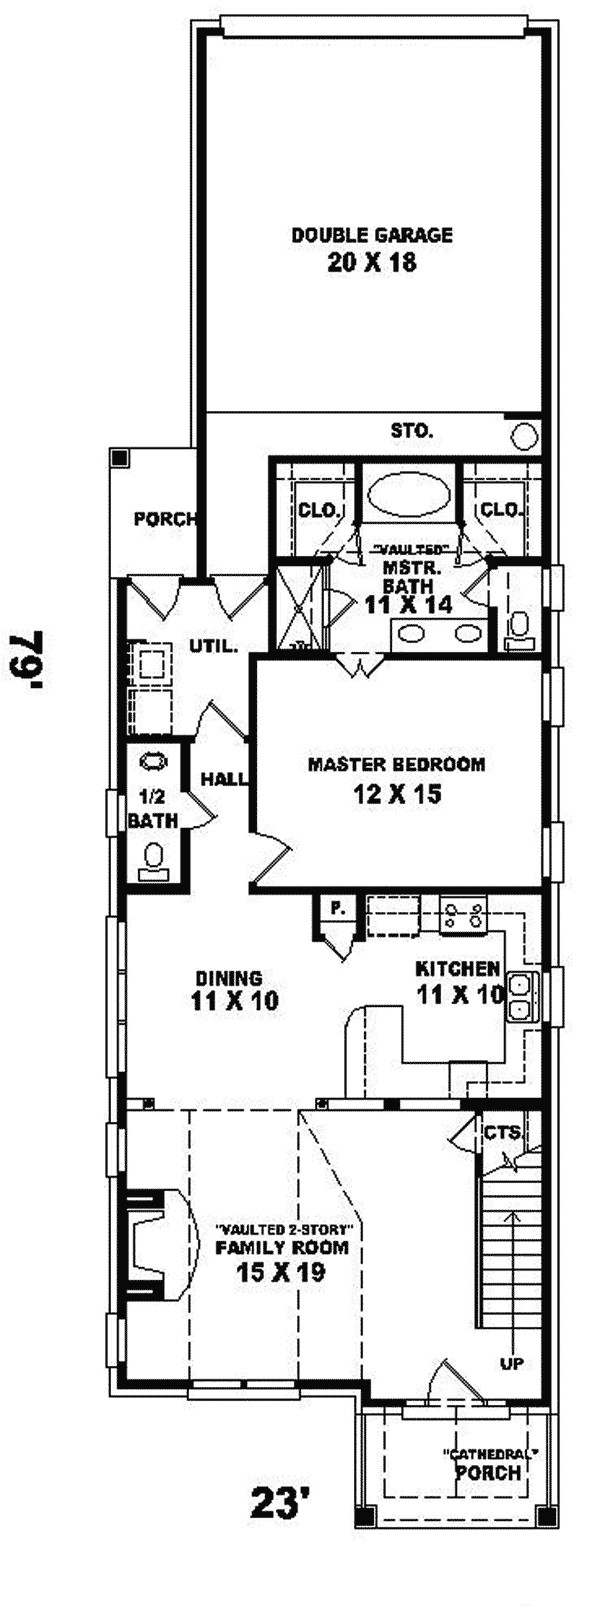 Single Story House Plans for Narrow Lots Enderby Park Narrow ... on beaufort style house plans, single level building, tri-level house plans, sprawling one-story house plans, open floor plan house plans, country style house plans, single level garage, spa house plans, single level decorating, house house plans, pet friendly house plans, den house plans, single level retail, ranch house plans, single level swimming pools, screened porch house plans, custom 6 bedroom home plans, 600 800 sq ft. house plans, complete set of house plans, courtyard house plans,